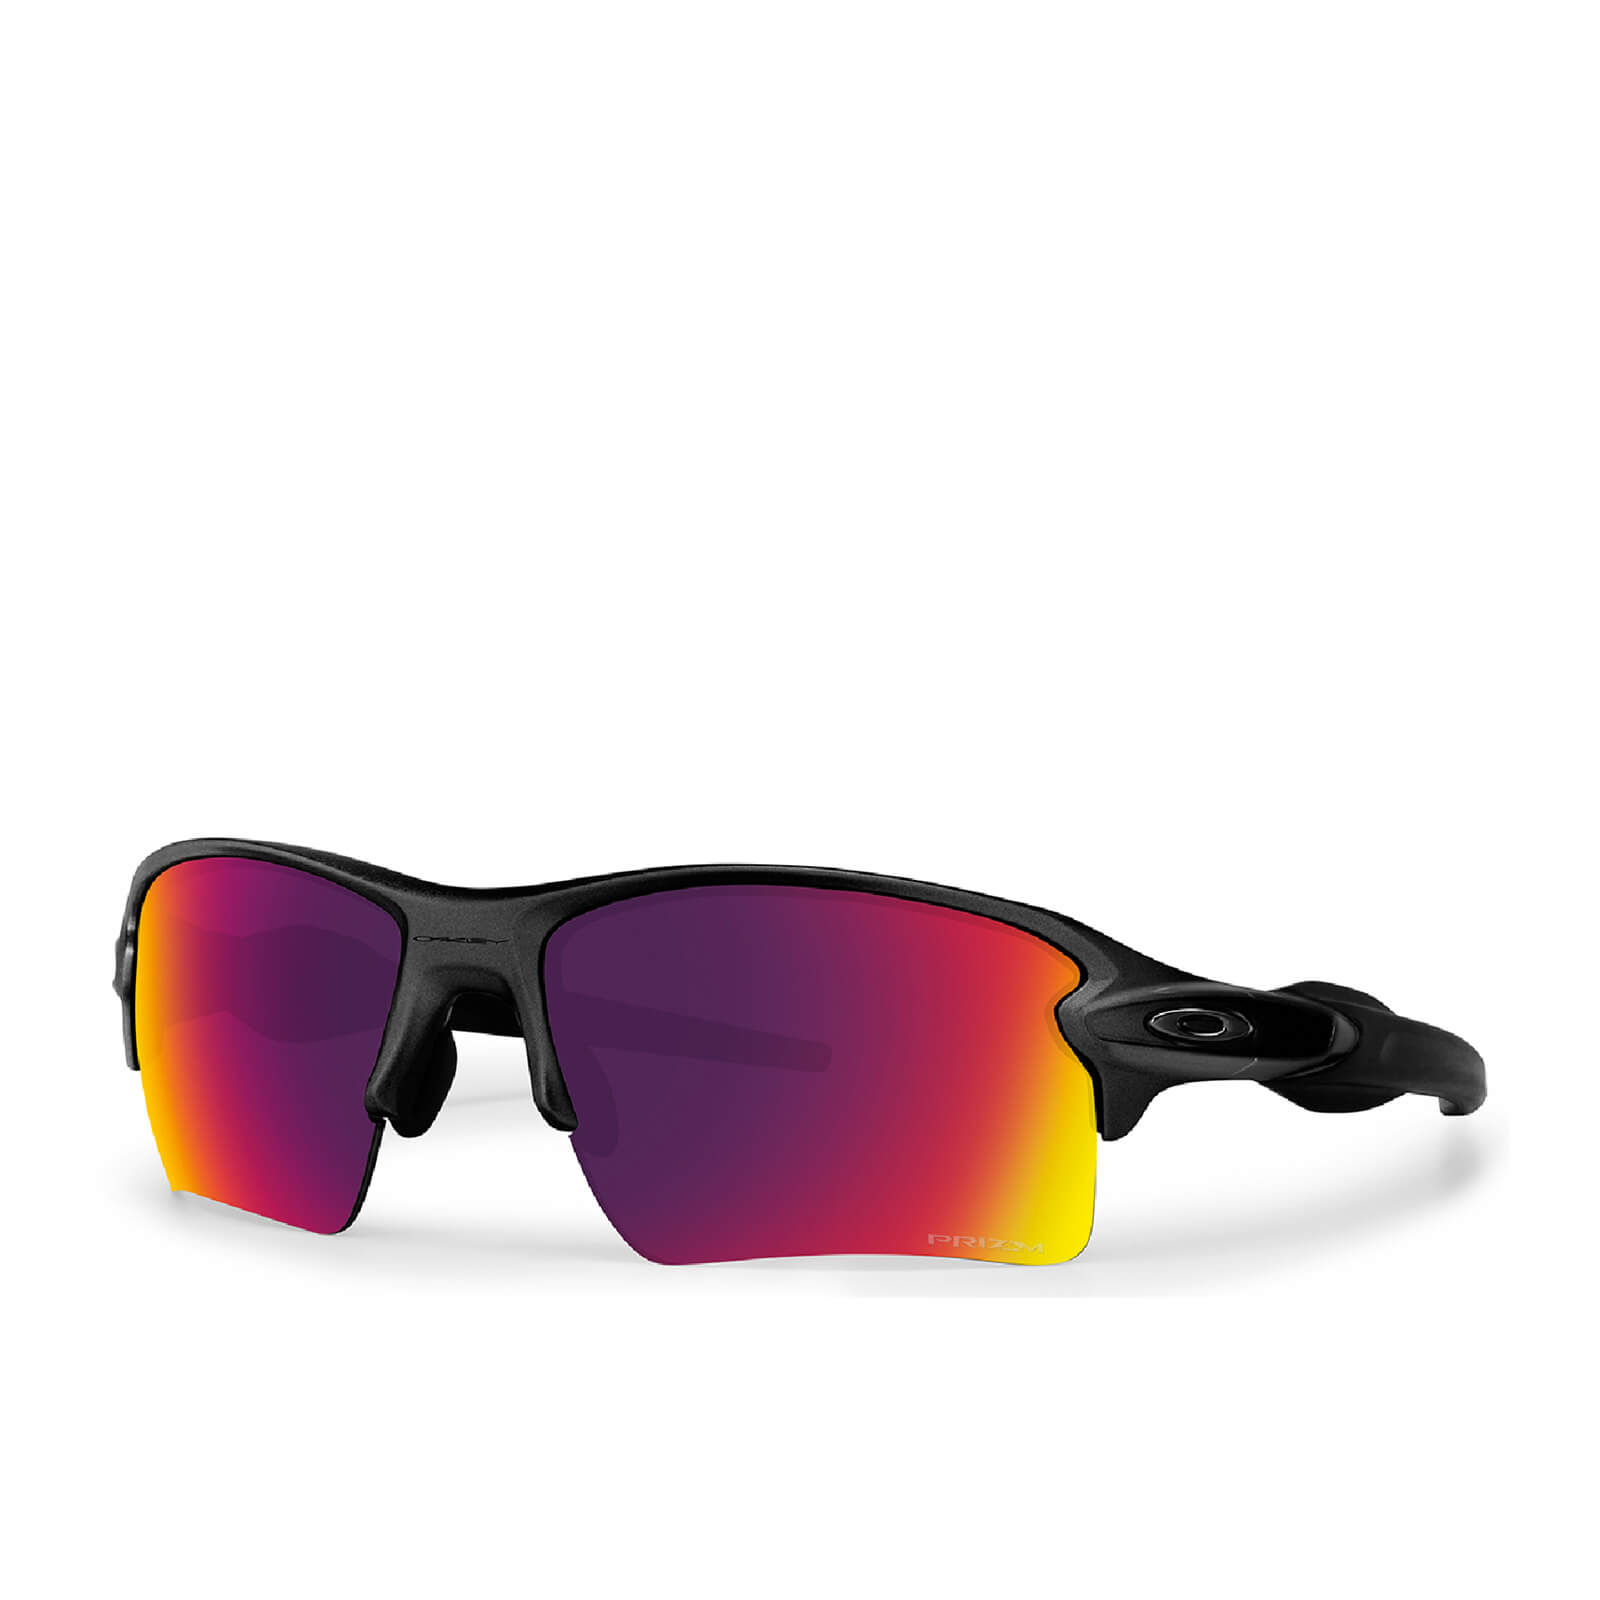 36e6cbf324e65 Oakley Flak 2.0 XL Prizm Sunglasses - Steel Prizm Road